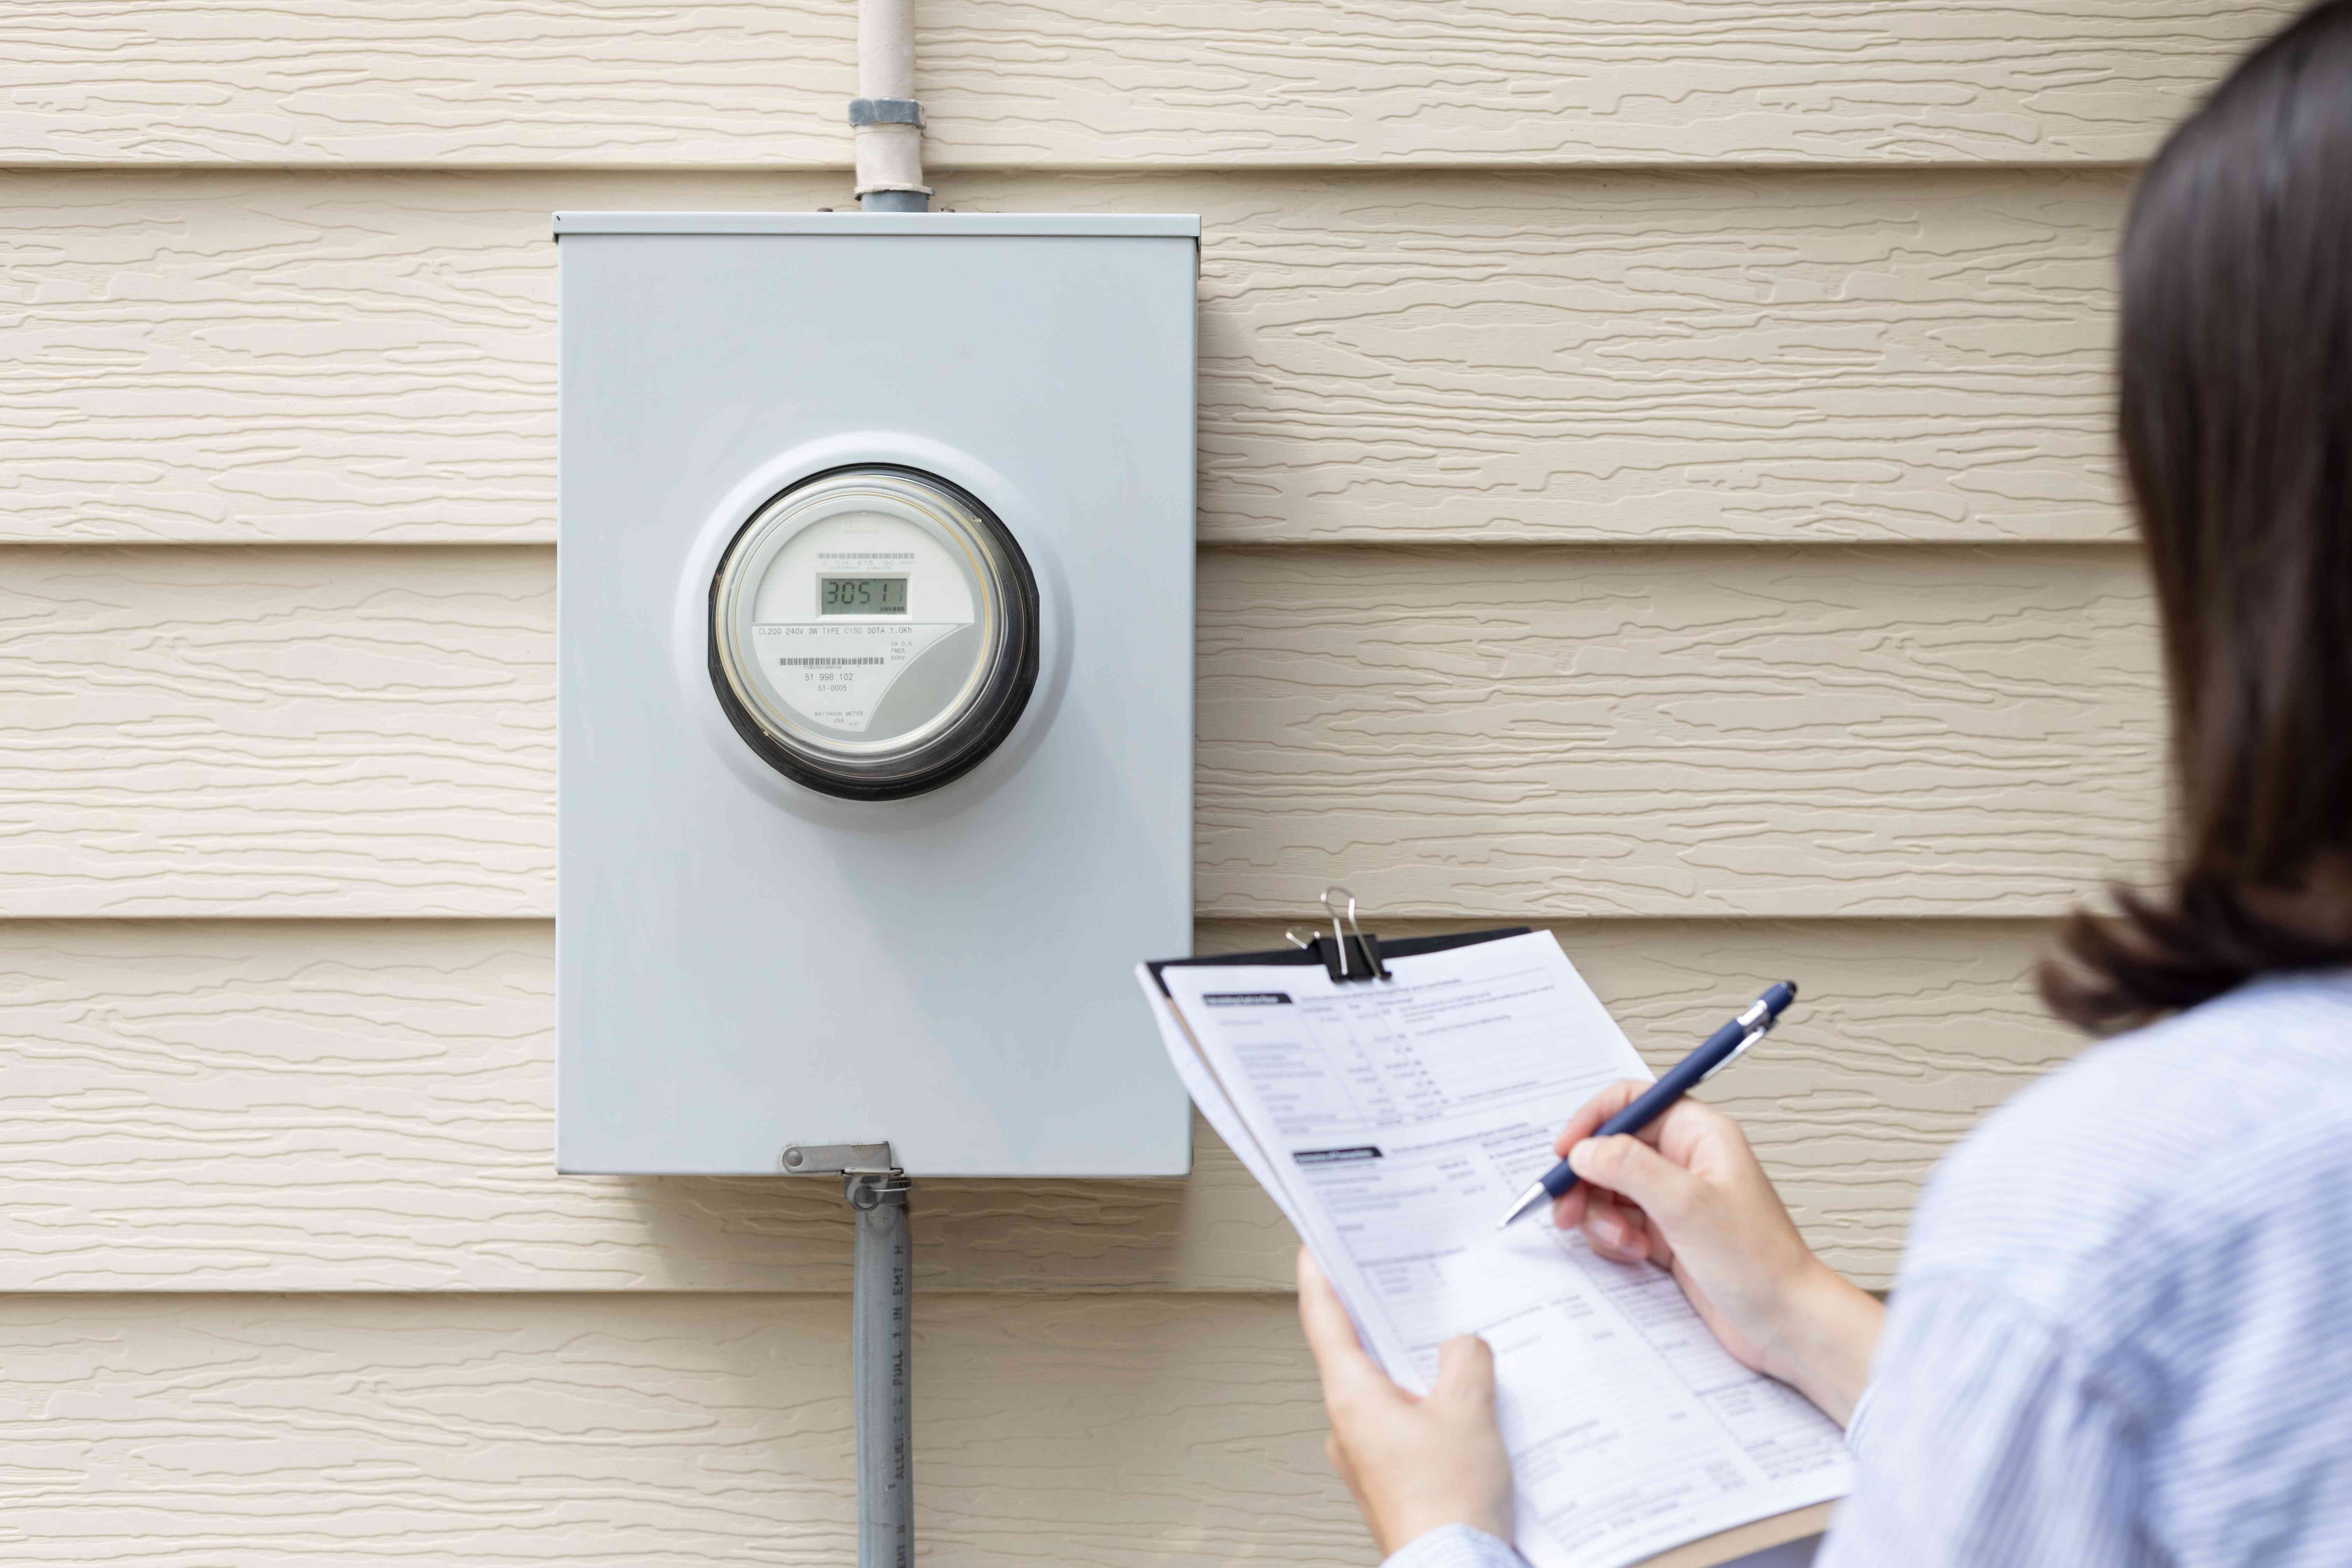 Outdoor energy meter being audited to lower electricity bill